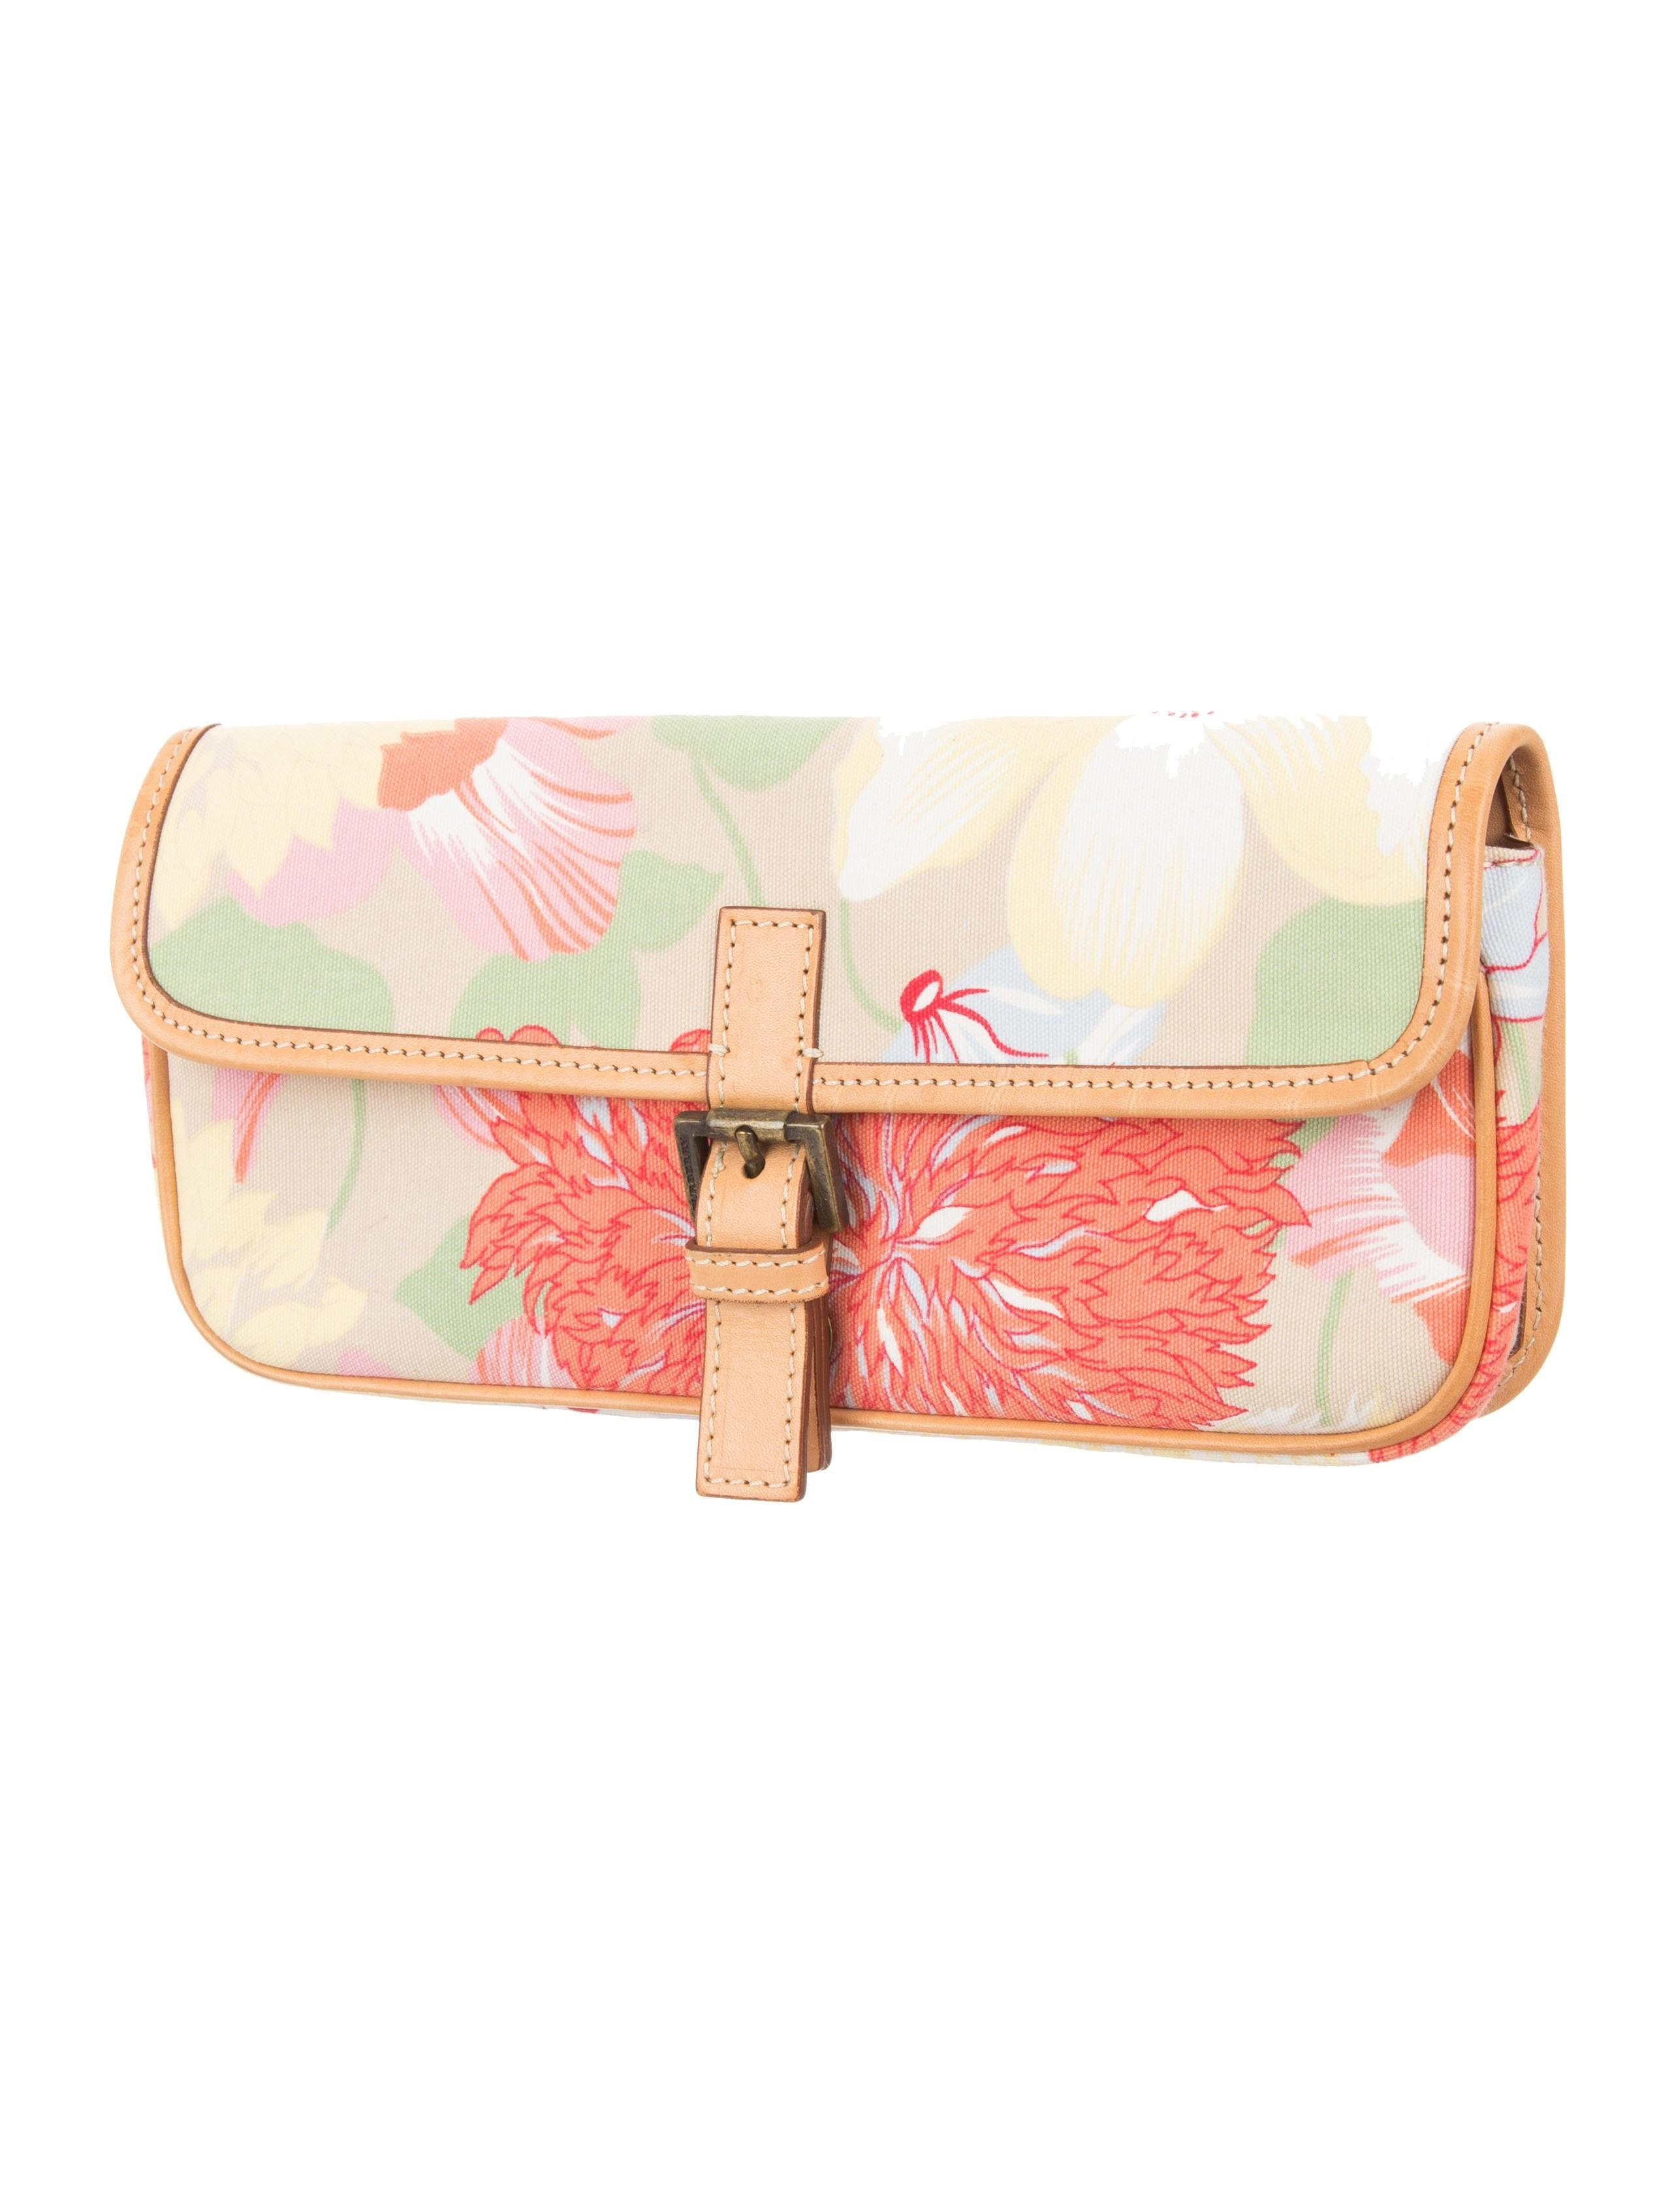 Burberry Leather Trimmed Floral Clutch Handbags